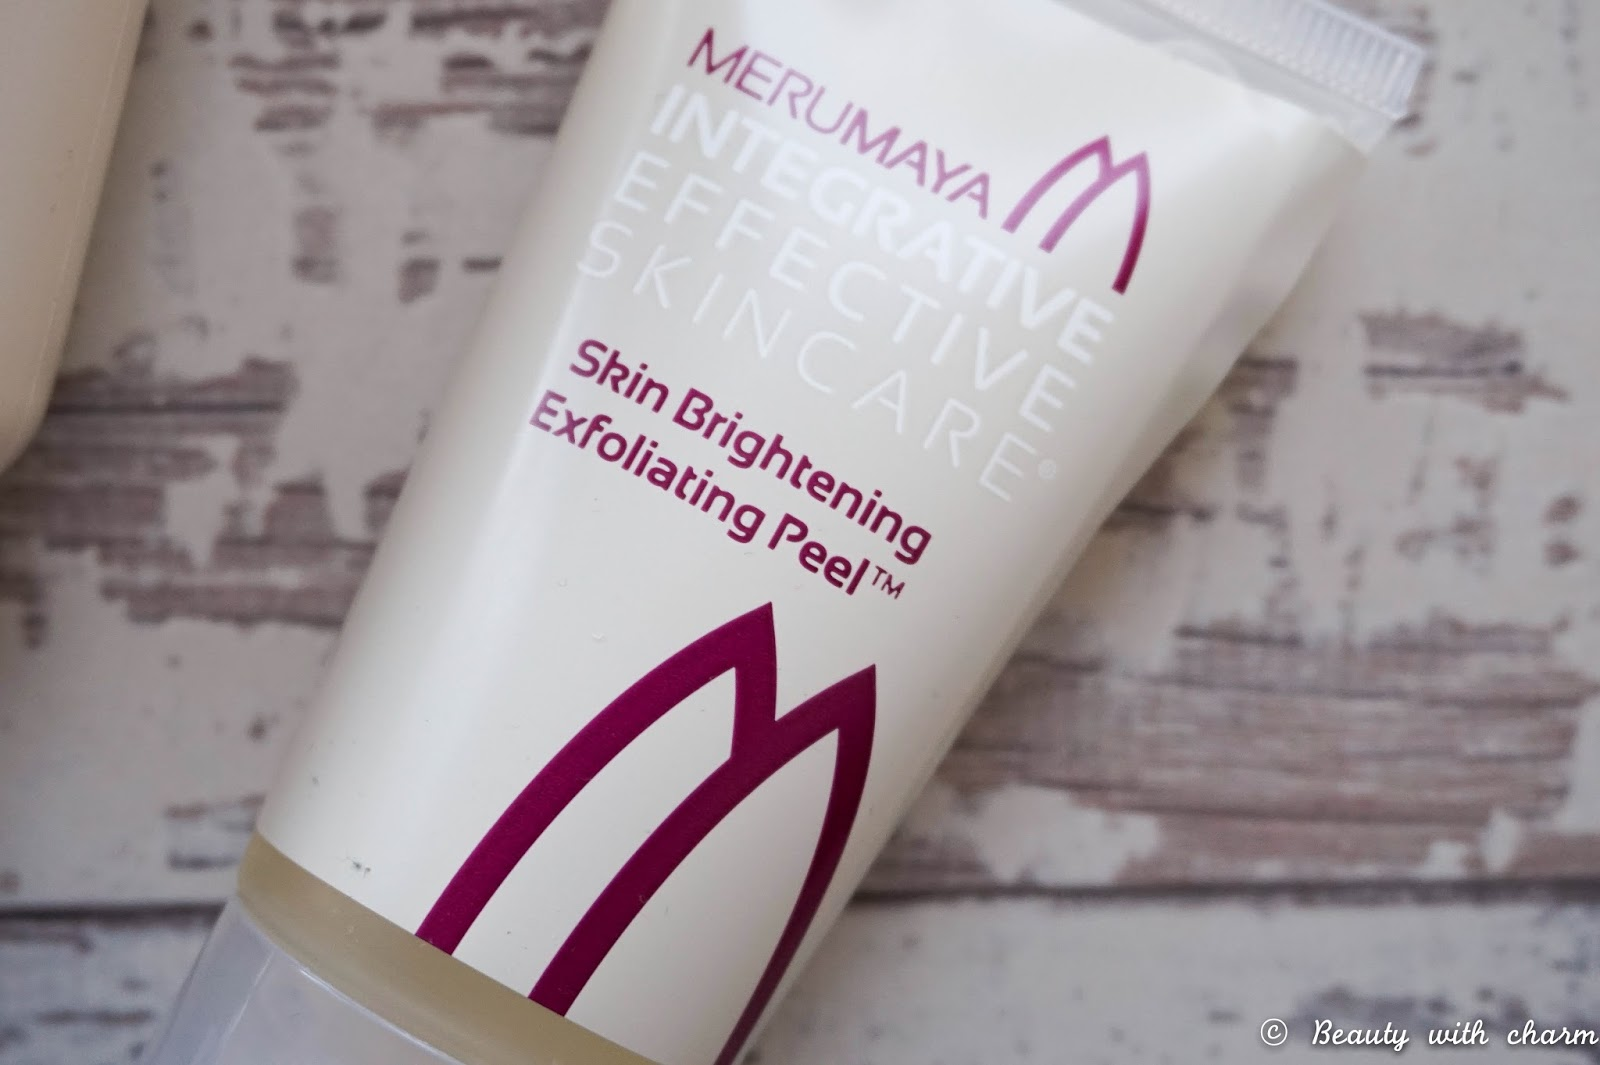 New Skincare Products - First Impressions, AA Skincare, Marula Oil, Merumaya Skincare